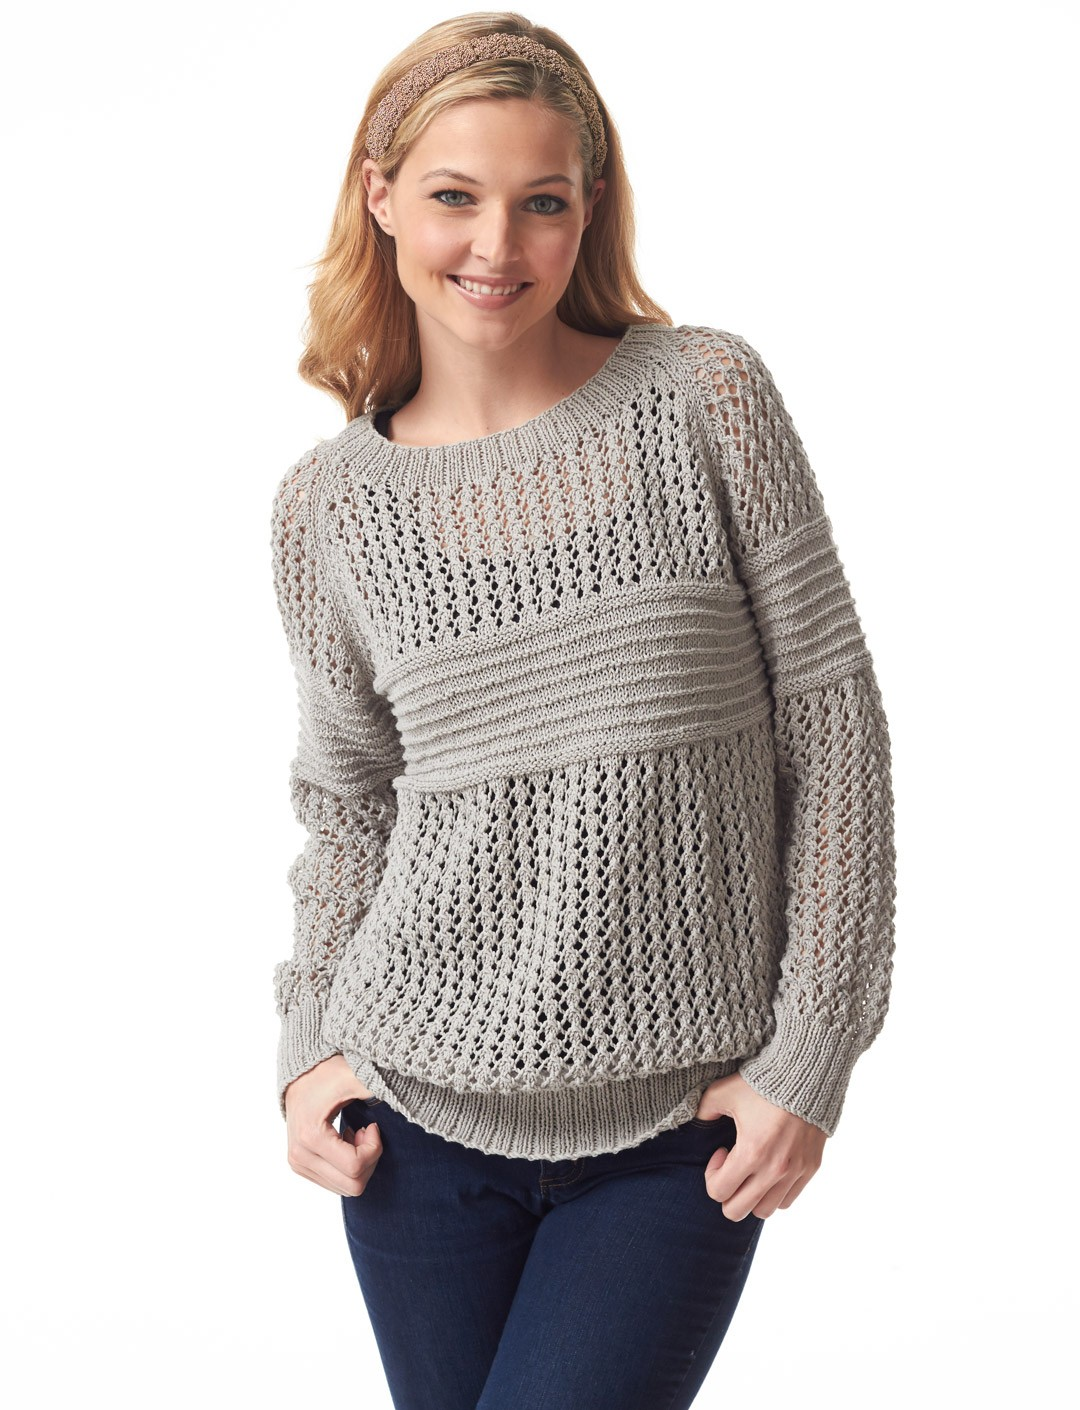 Free Knitting Patterns Bags : Bernat Social Network Pullover, Knit Pattern Yarnspirations